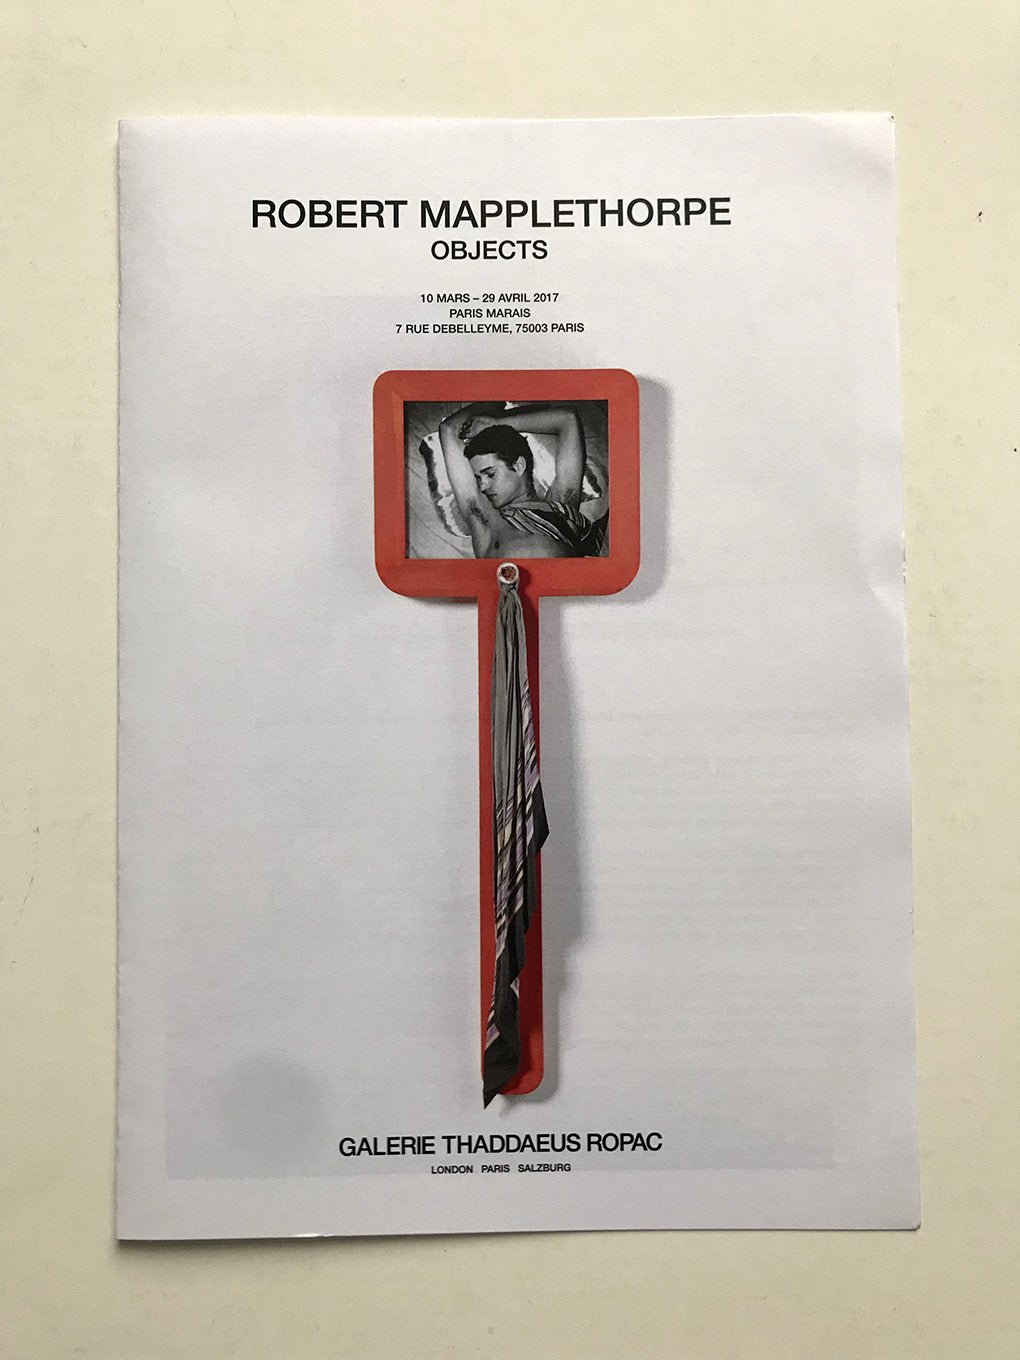 Robert Mapplethorpe - Objects at  Thaddaeus Ropac Gallery. 2017 - Exhibition guide